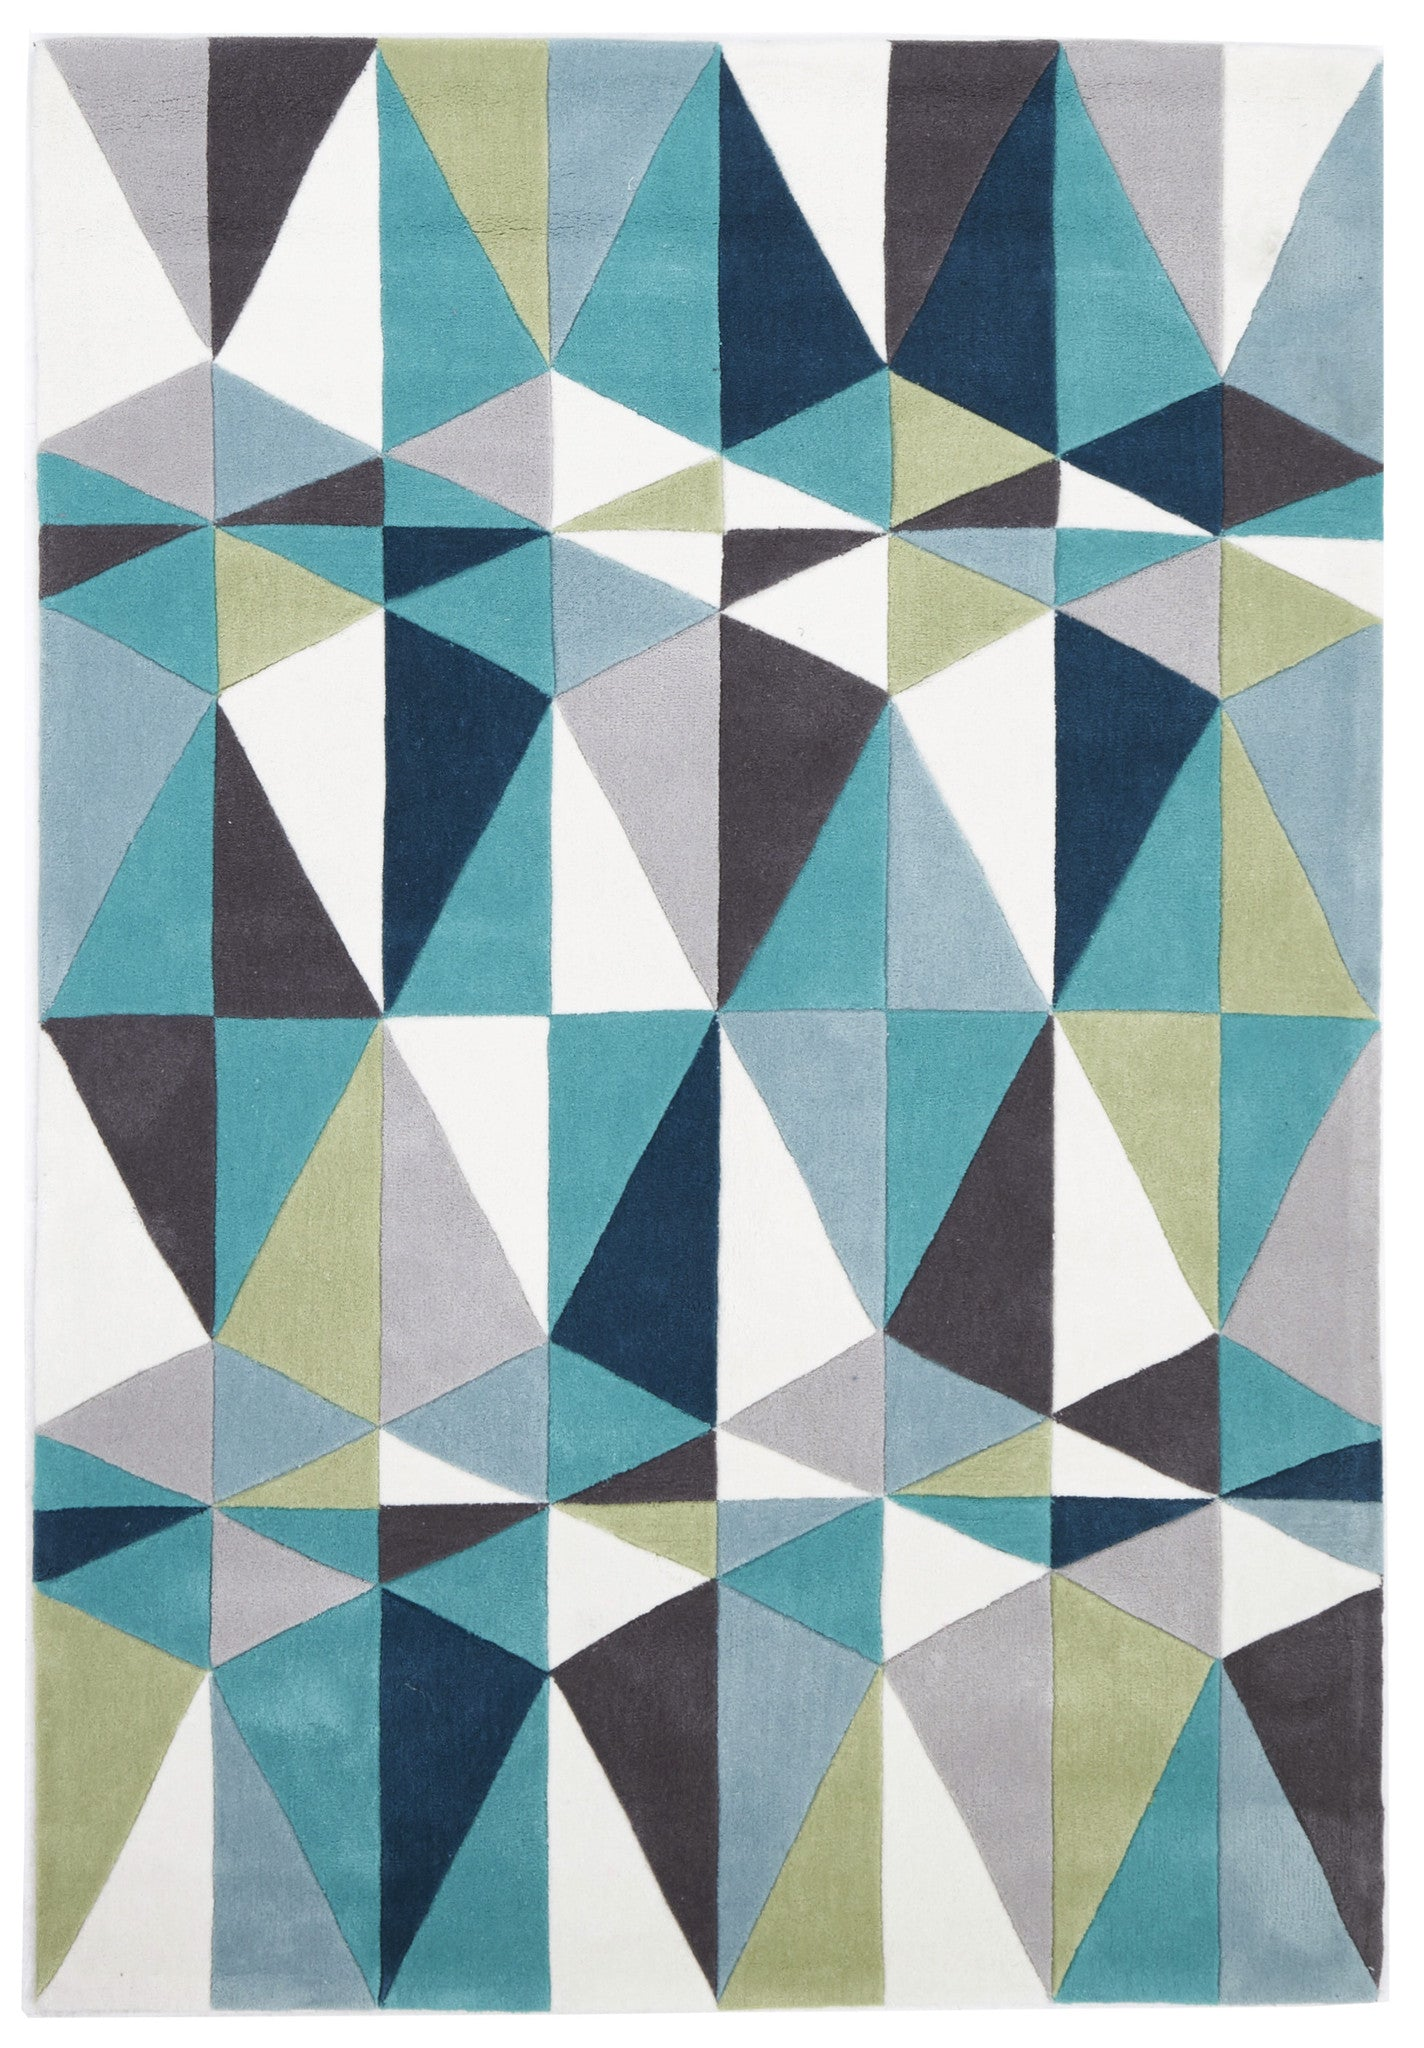 Gold 646 Rug - Charcoal, Blue, Green